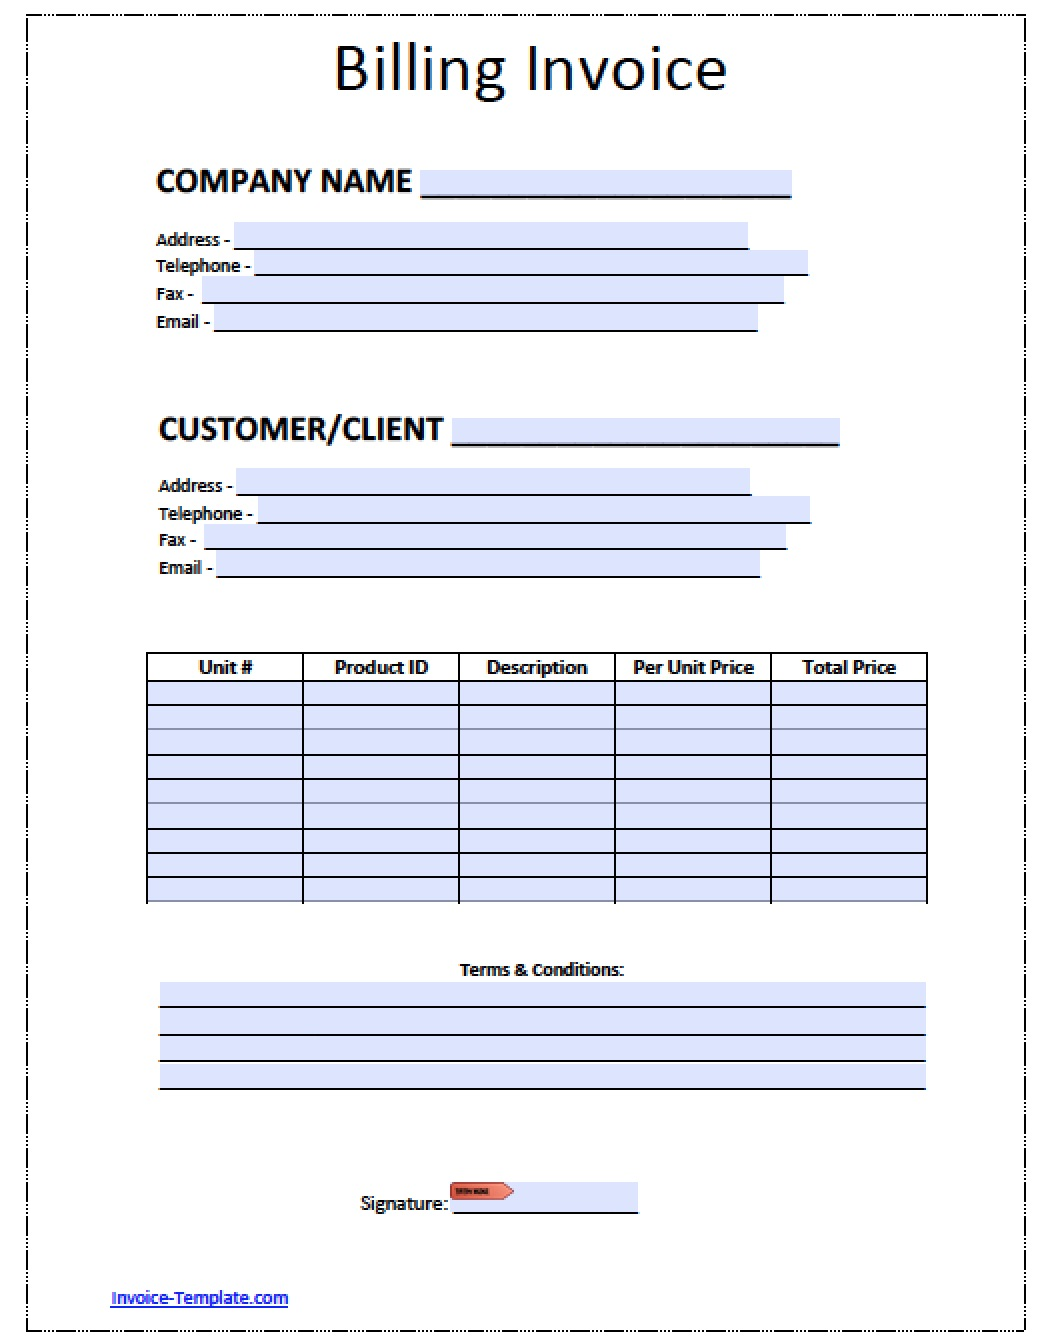 Billing Invoice Pertaminico - Free template for invoice for services rendered apple store online